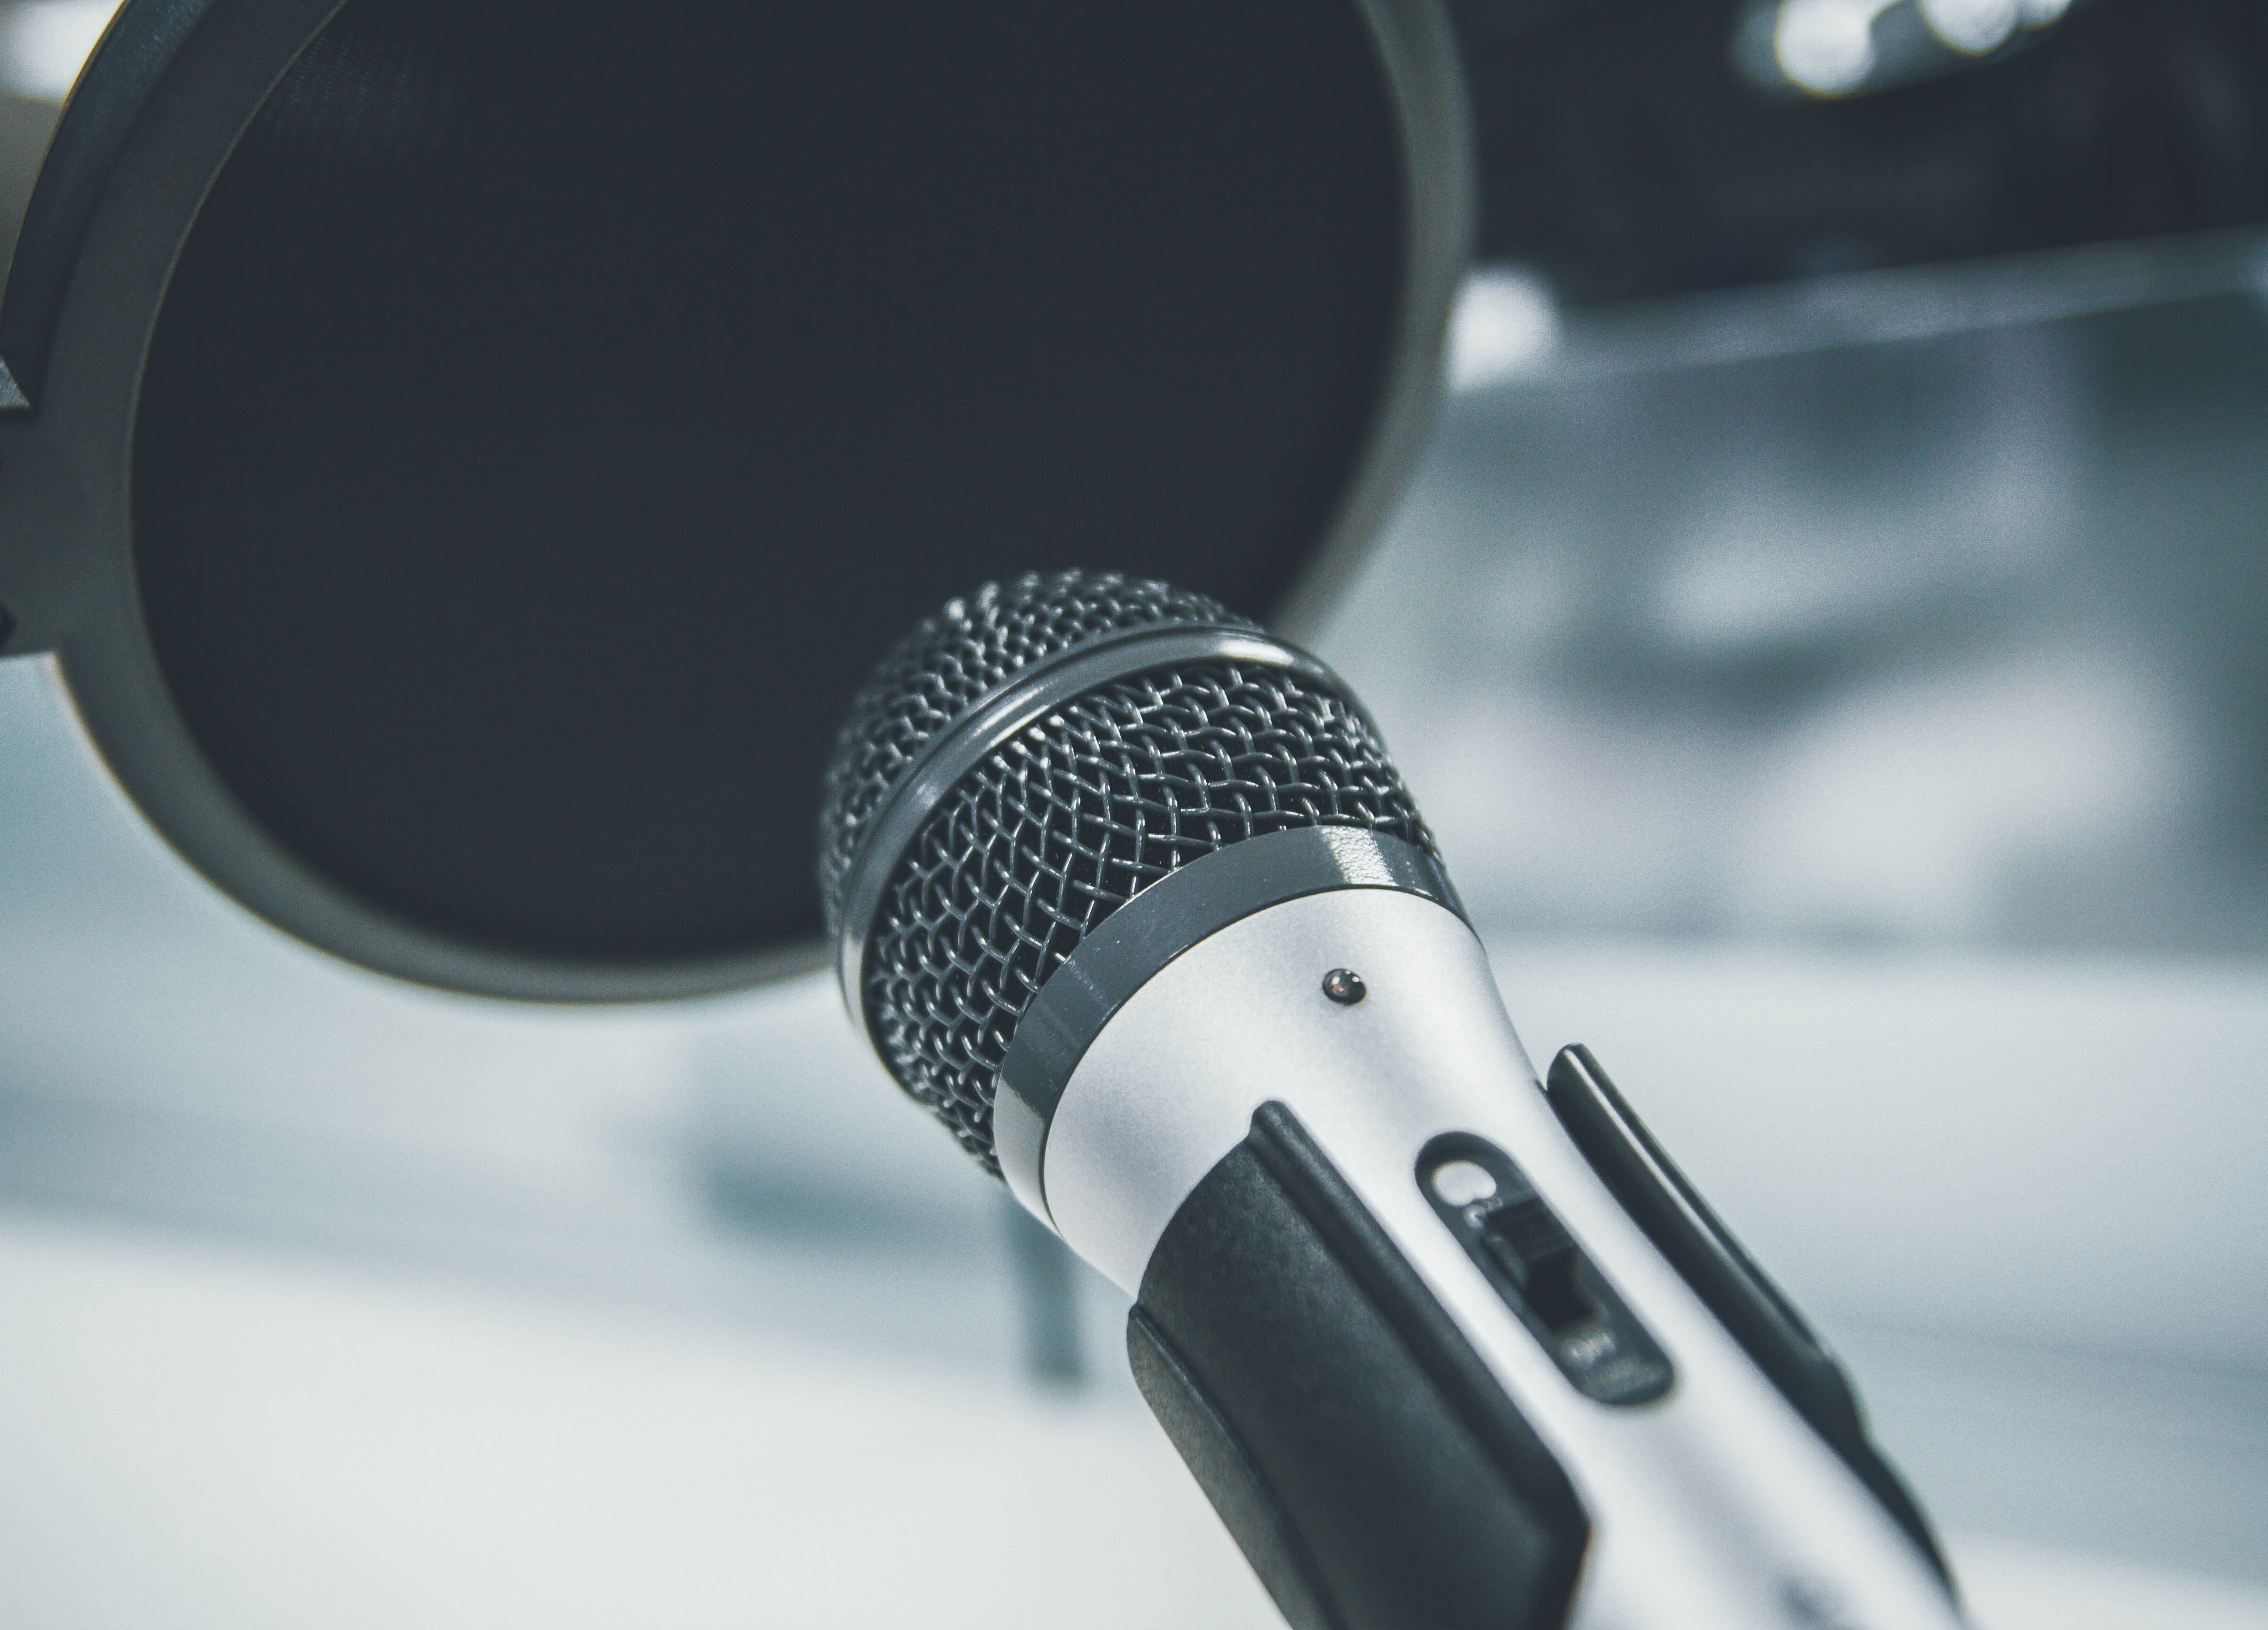 gray and black dynamic microphone with filter